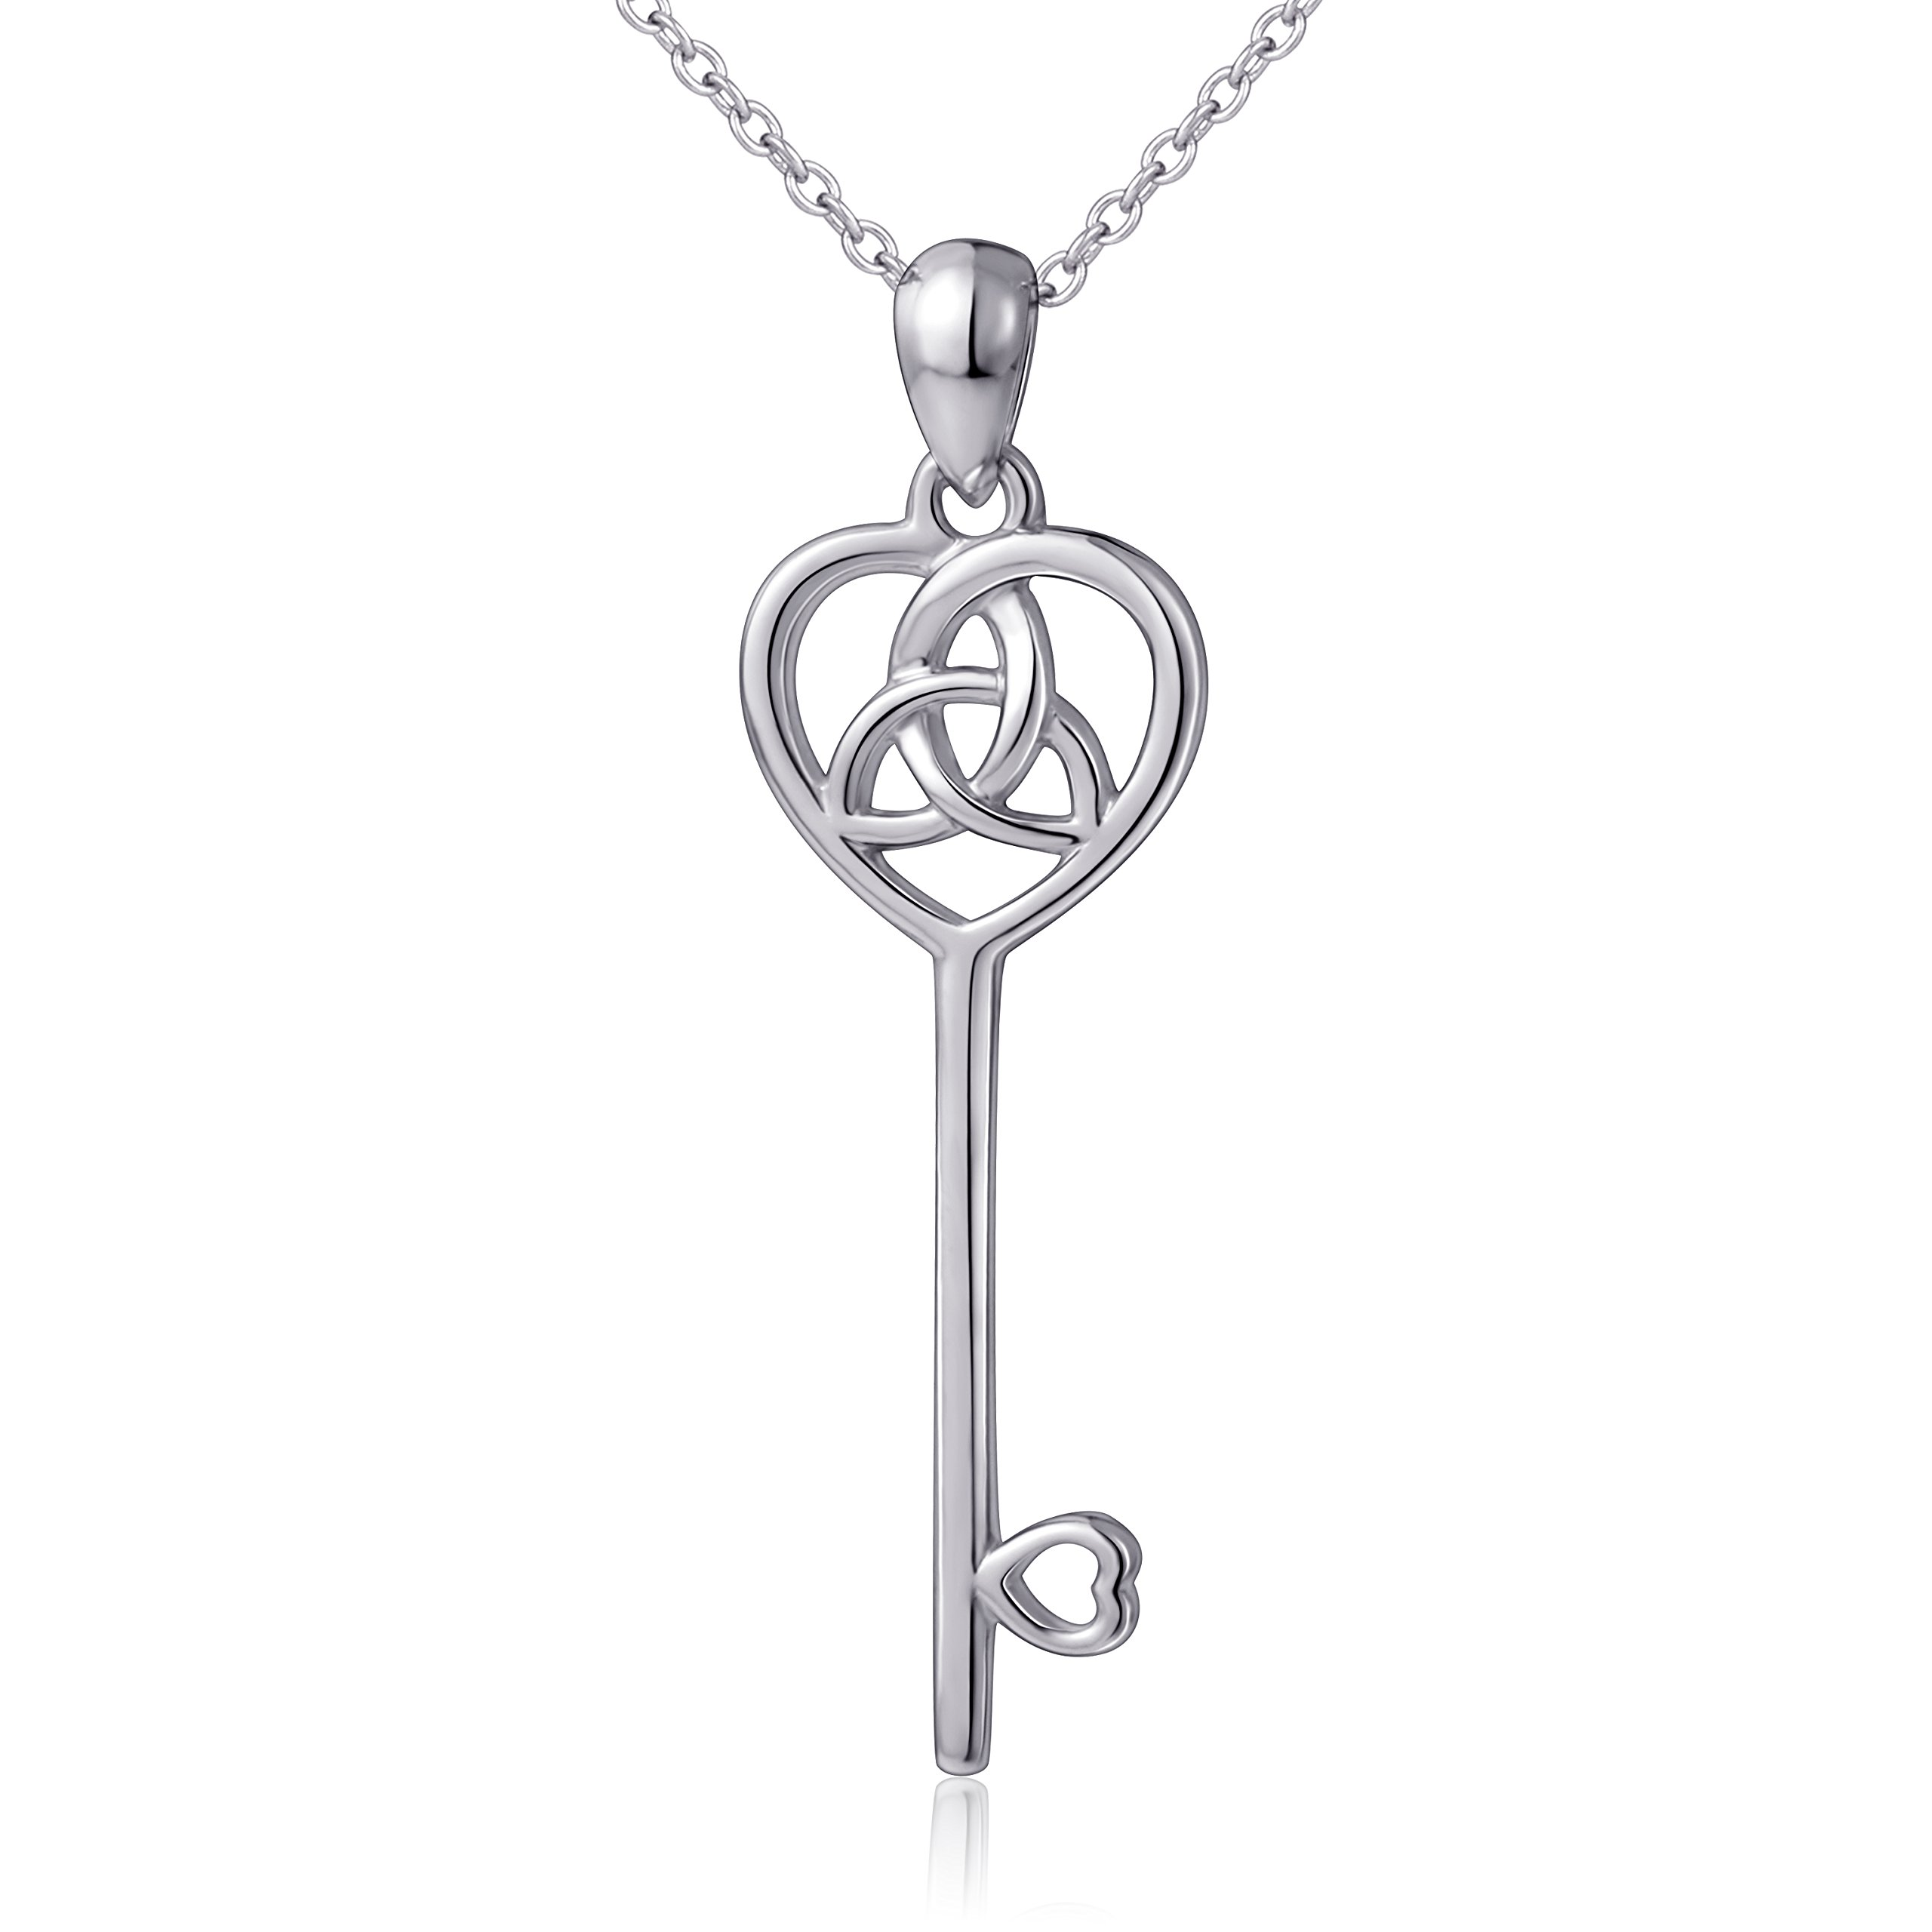 LINLIN FINE JEWELRY 925 Sterling Silver Irish Celtic Trinity Knot Heart Key Pendant Necklace for Women, 18'' (Pendant Necklace with Gift Box)